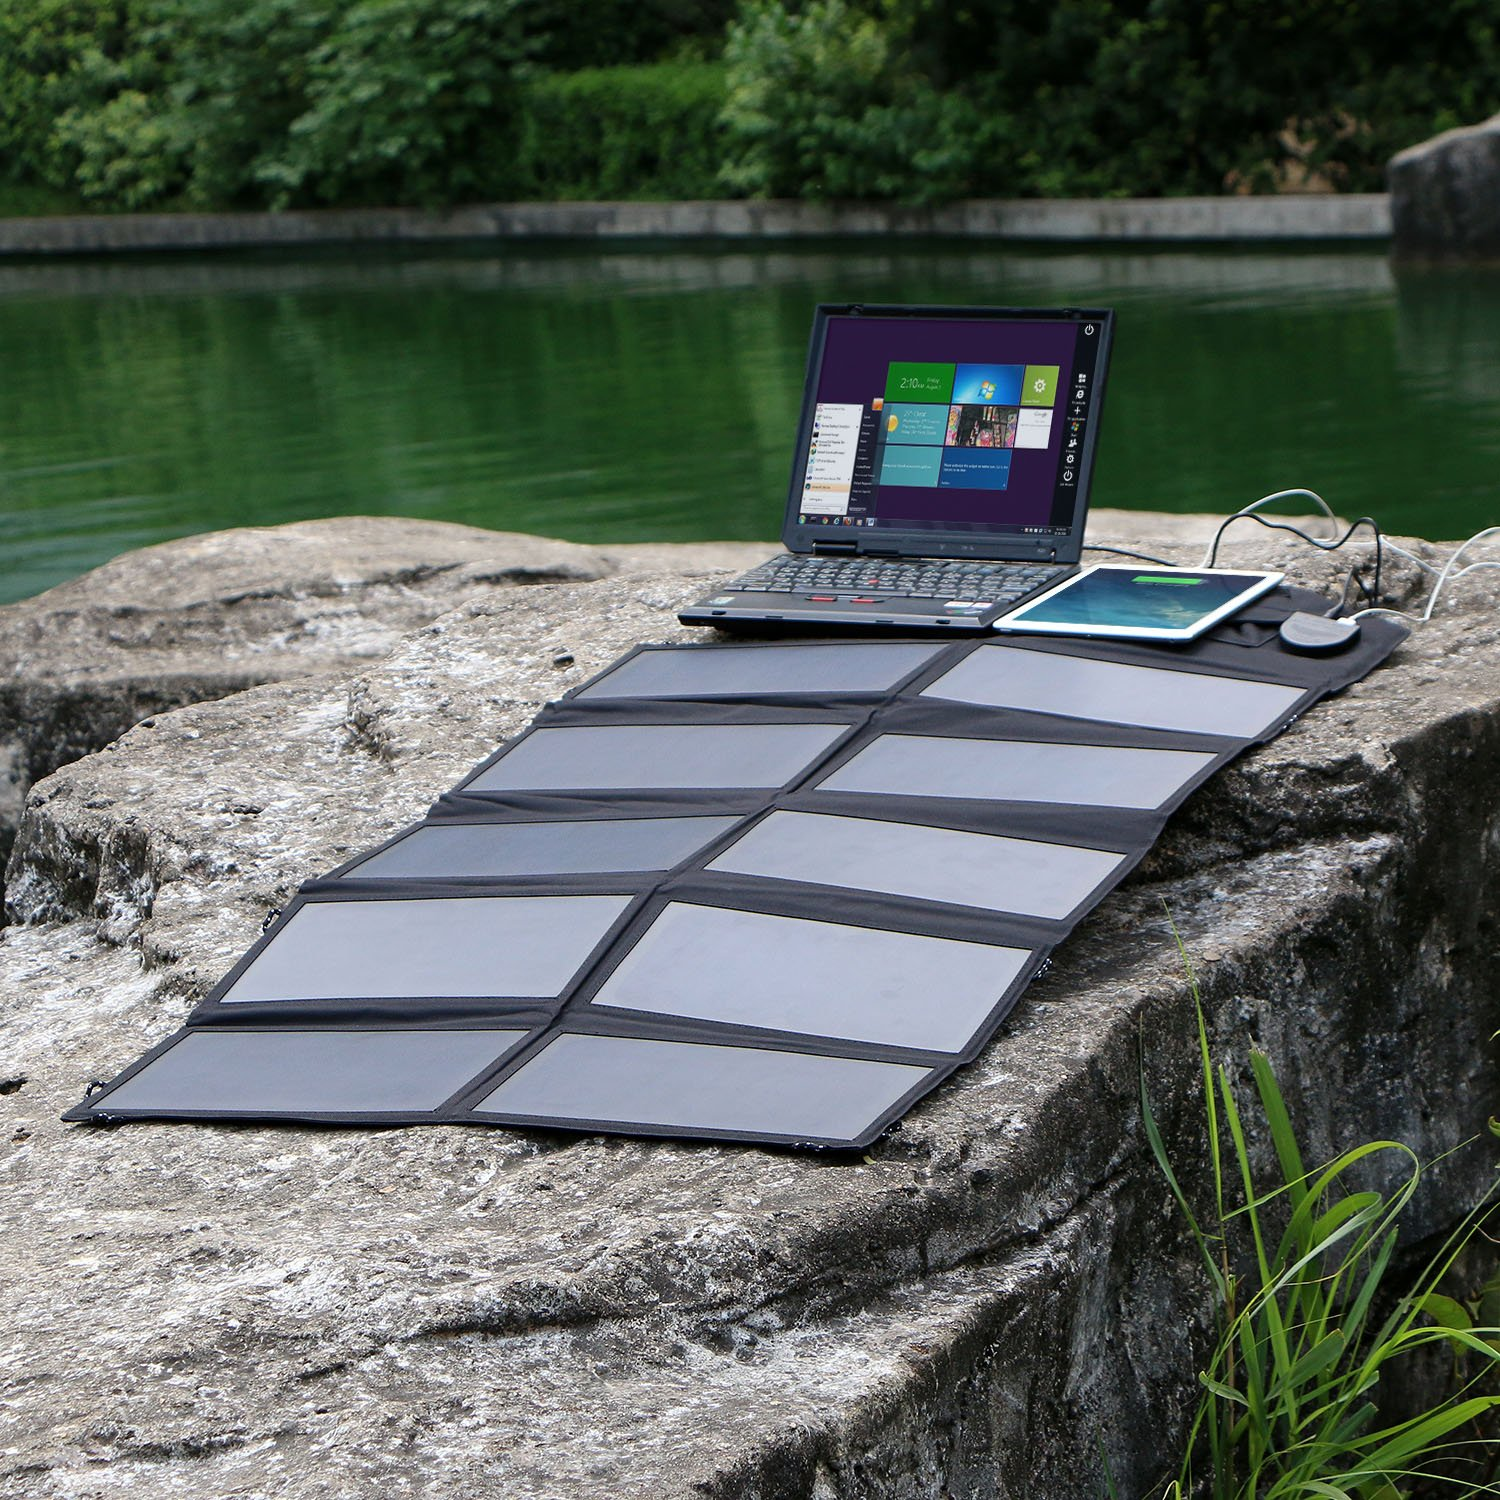 Best Solar Chargers Allpowers 60